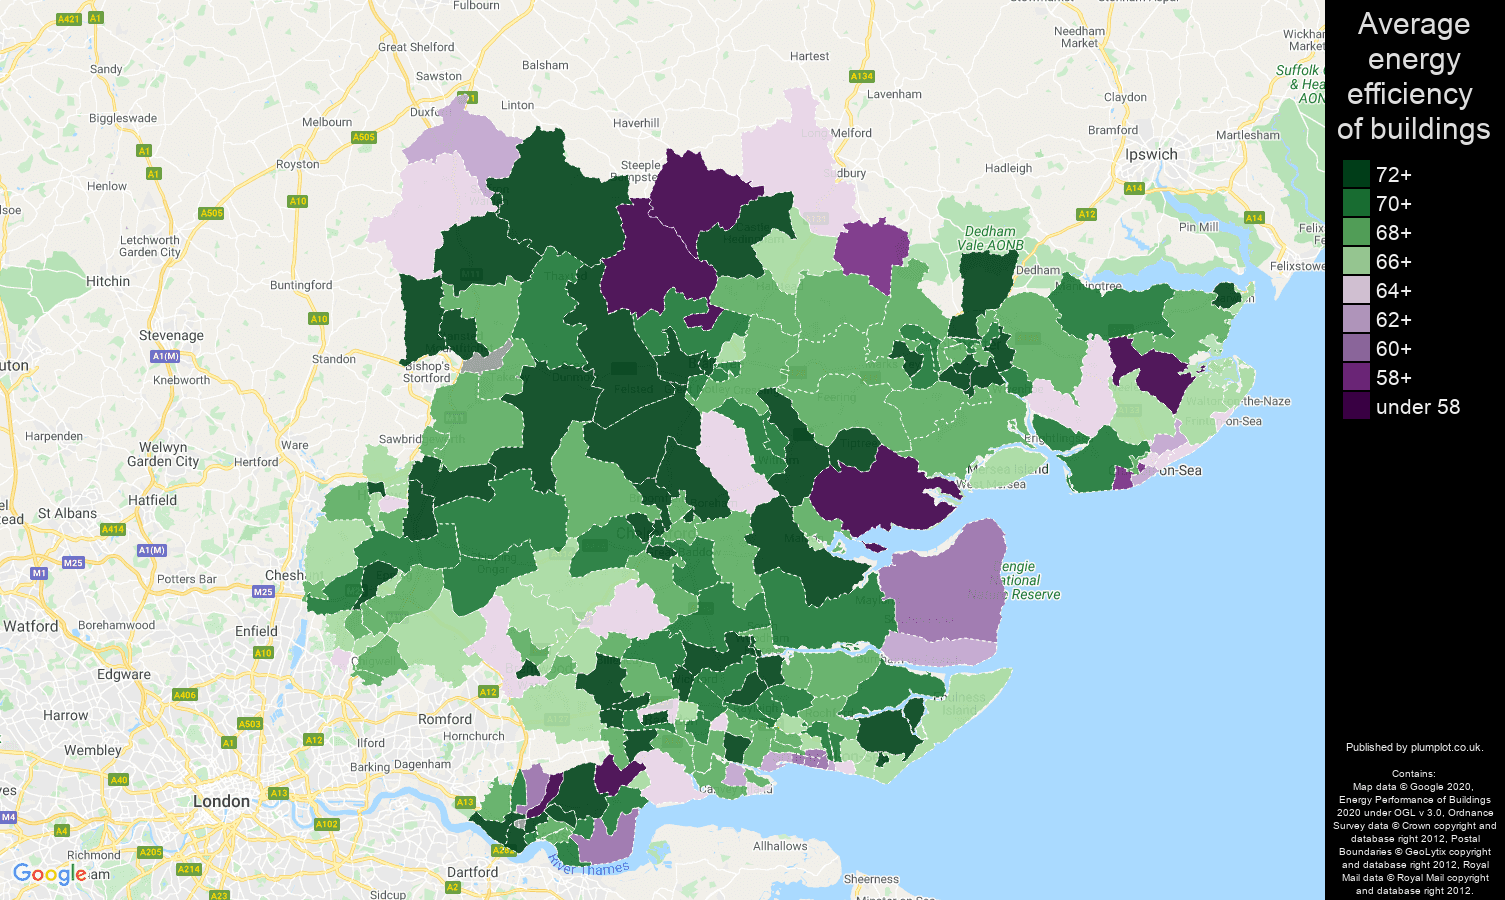 Essex map of energy efficiency of flats